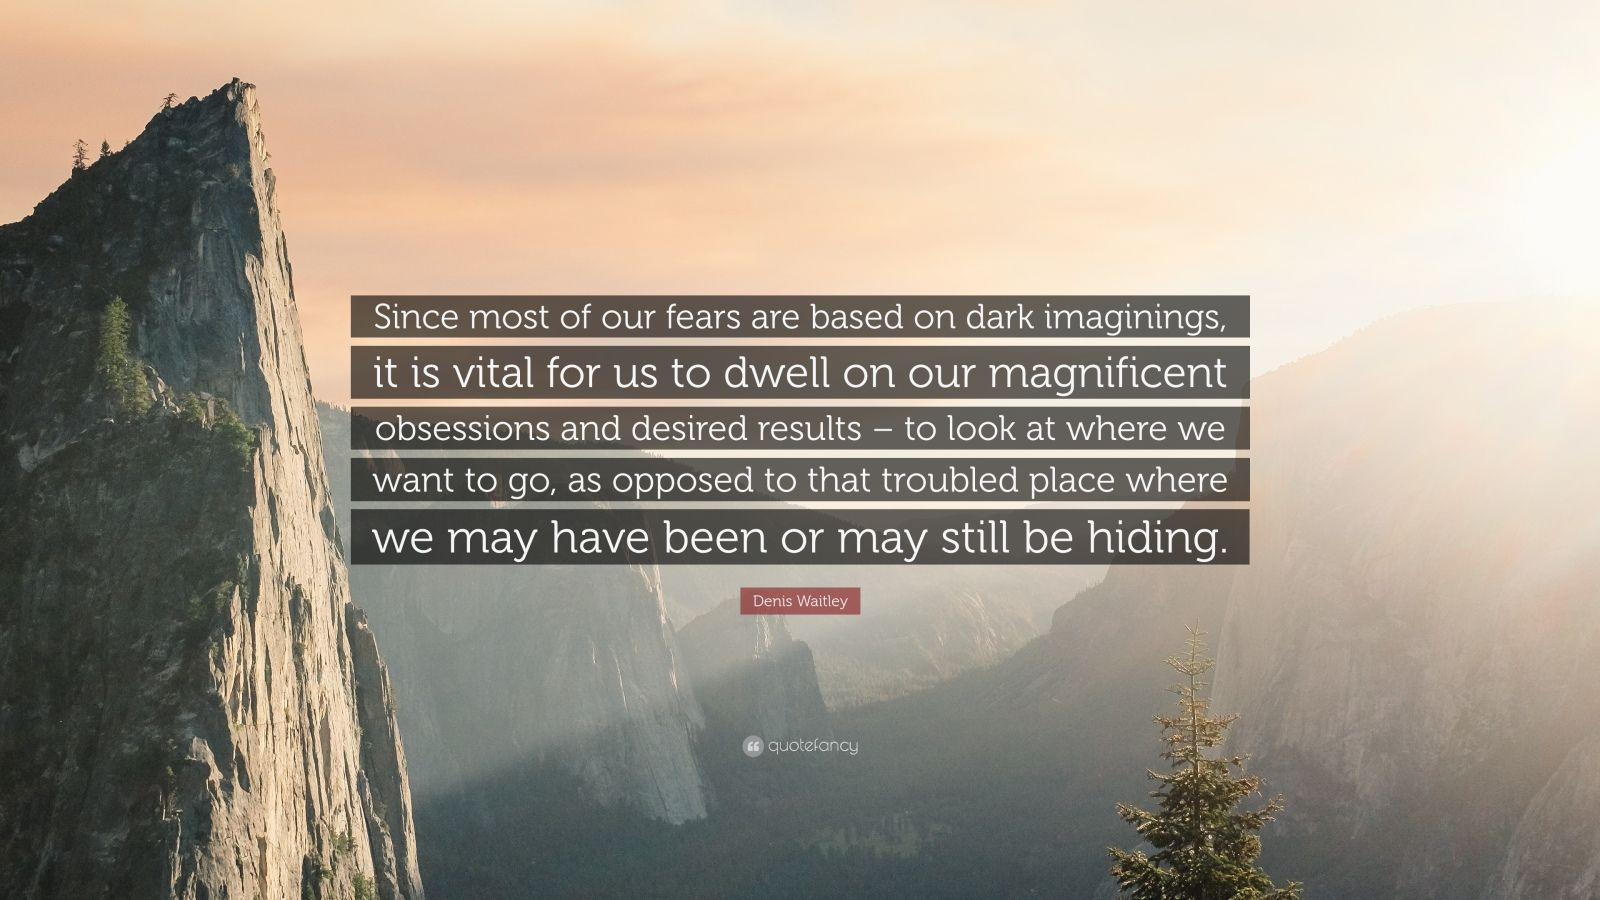 """Denis Waitley Quote: """"Since most of our fears are based on dark imaginings, it is vital for us to dwell on our magnificent obsessions and desired results – to look at where we want to go, as opposed to that troubled place where we may have been or may still be hiding."""""""